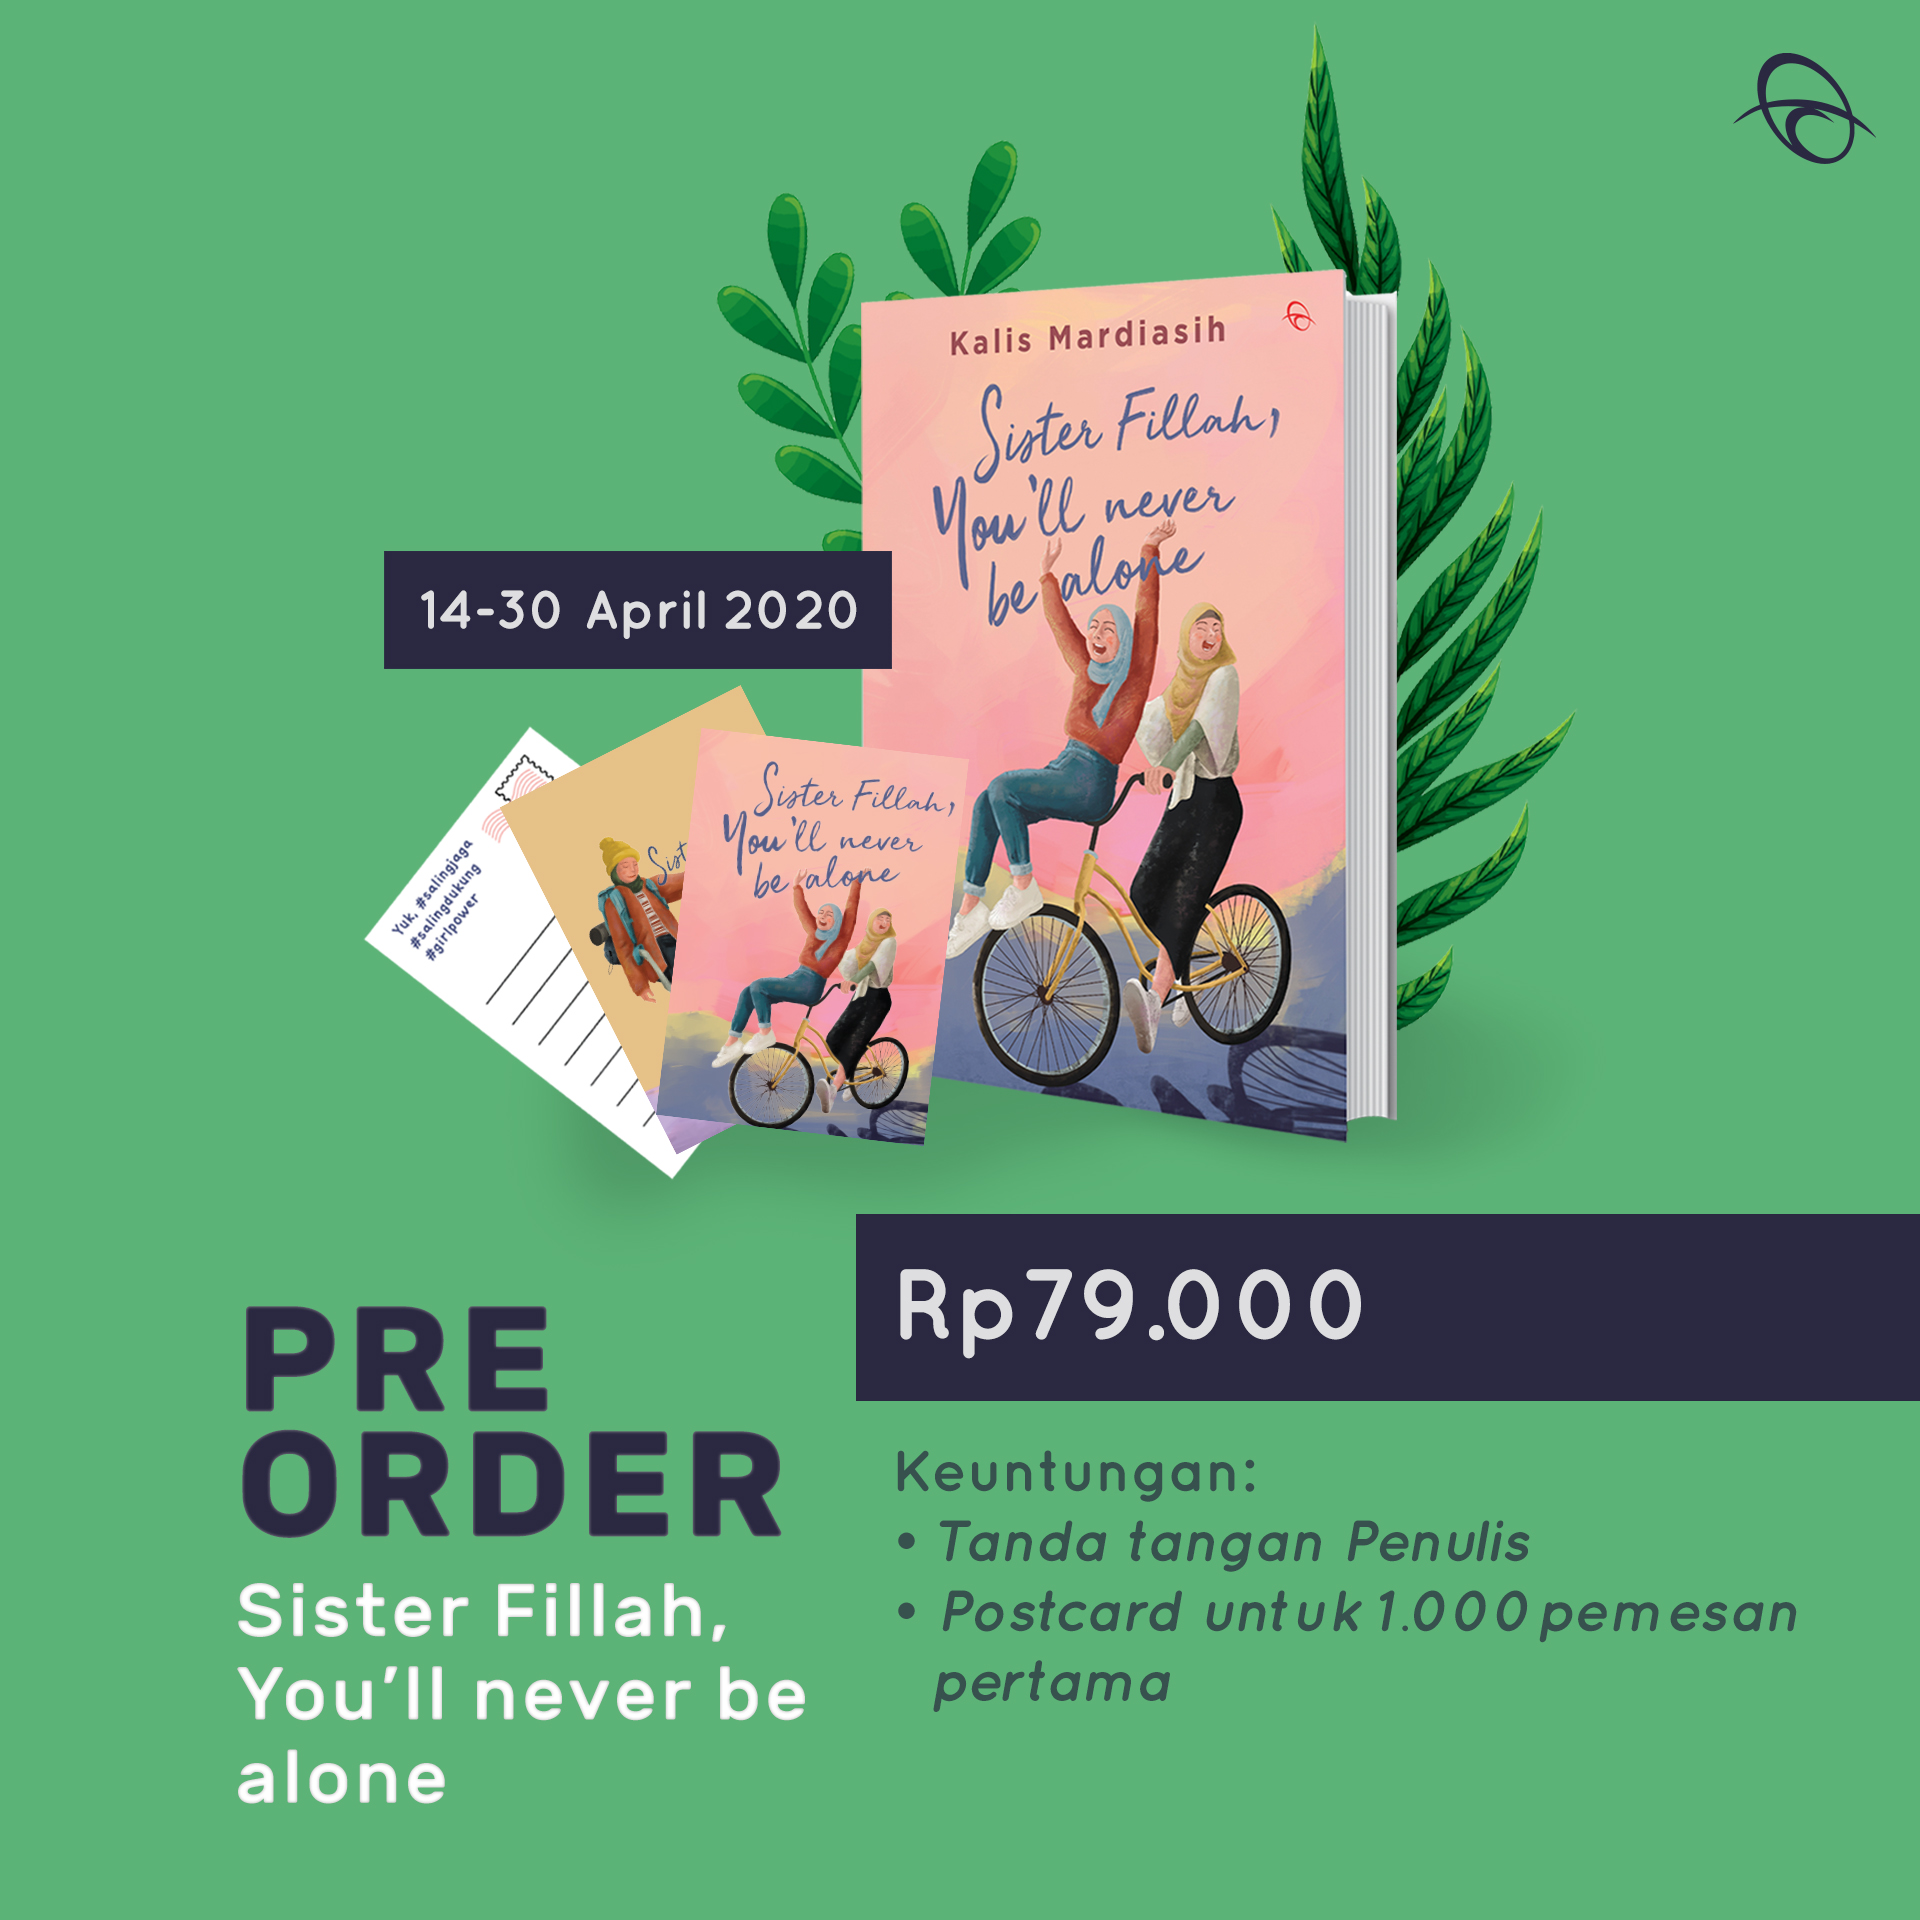 Pre- Order SISTER FILLAH,YOU'LL NEVER BE ALONE